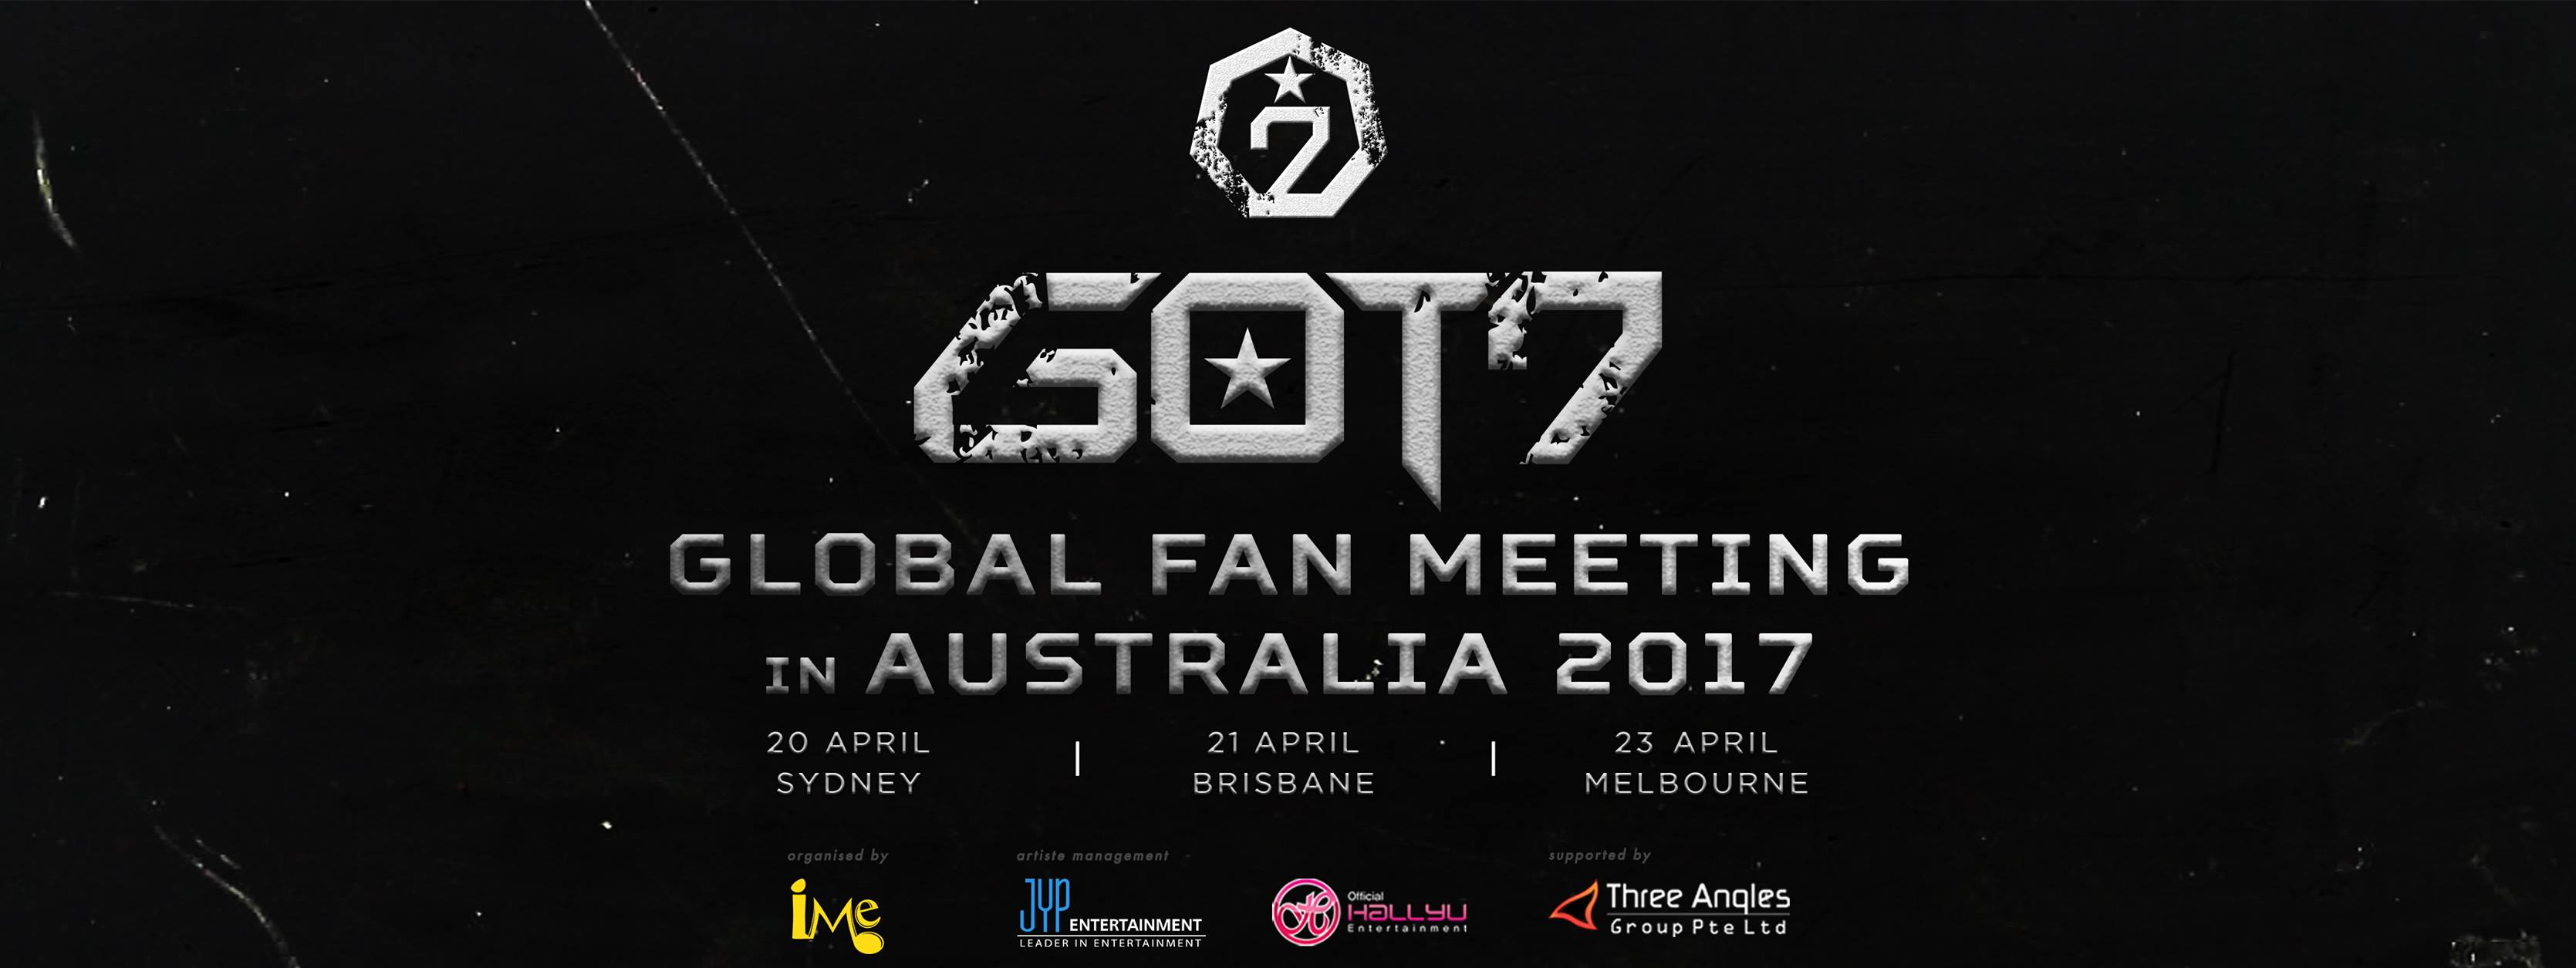 Dates and cities announced for GOT7 Global Fan Meeting in Australia 2017